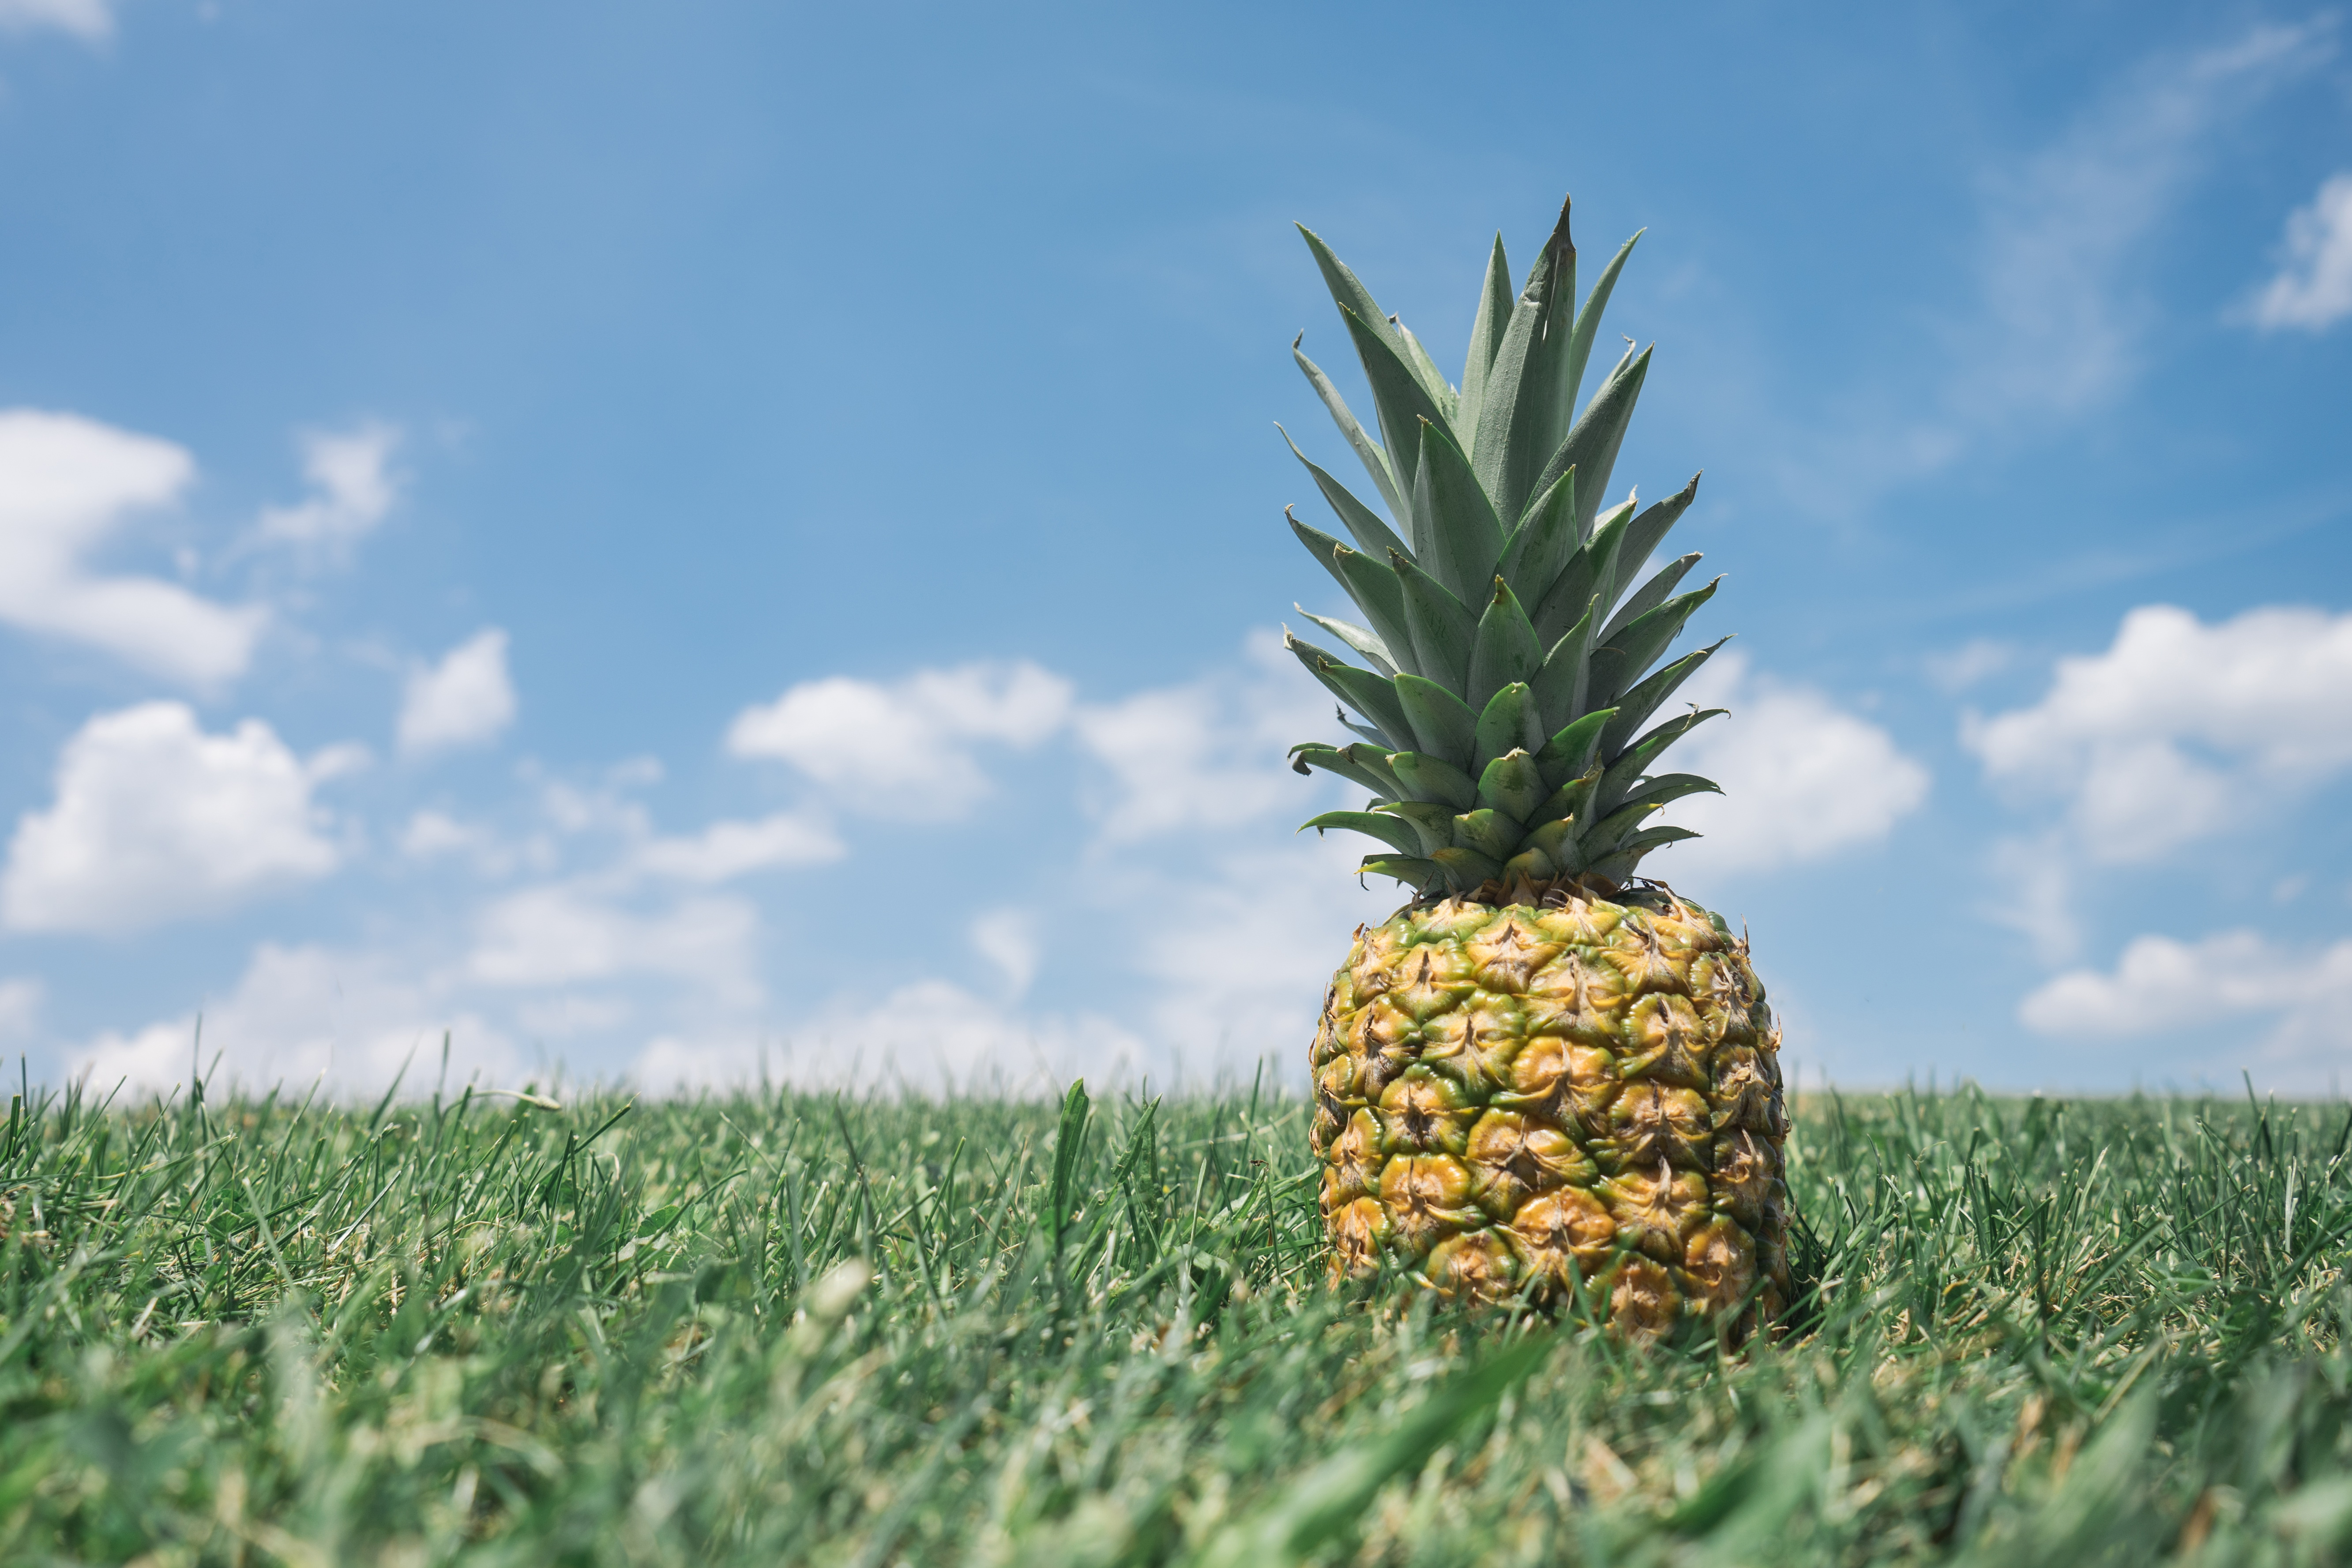 Pineapple sits in green grass